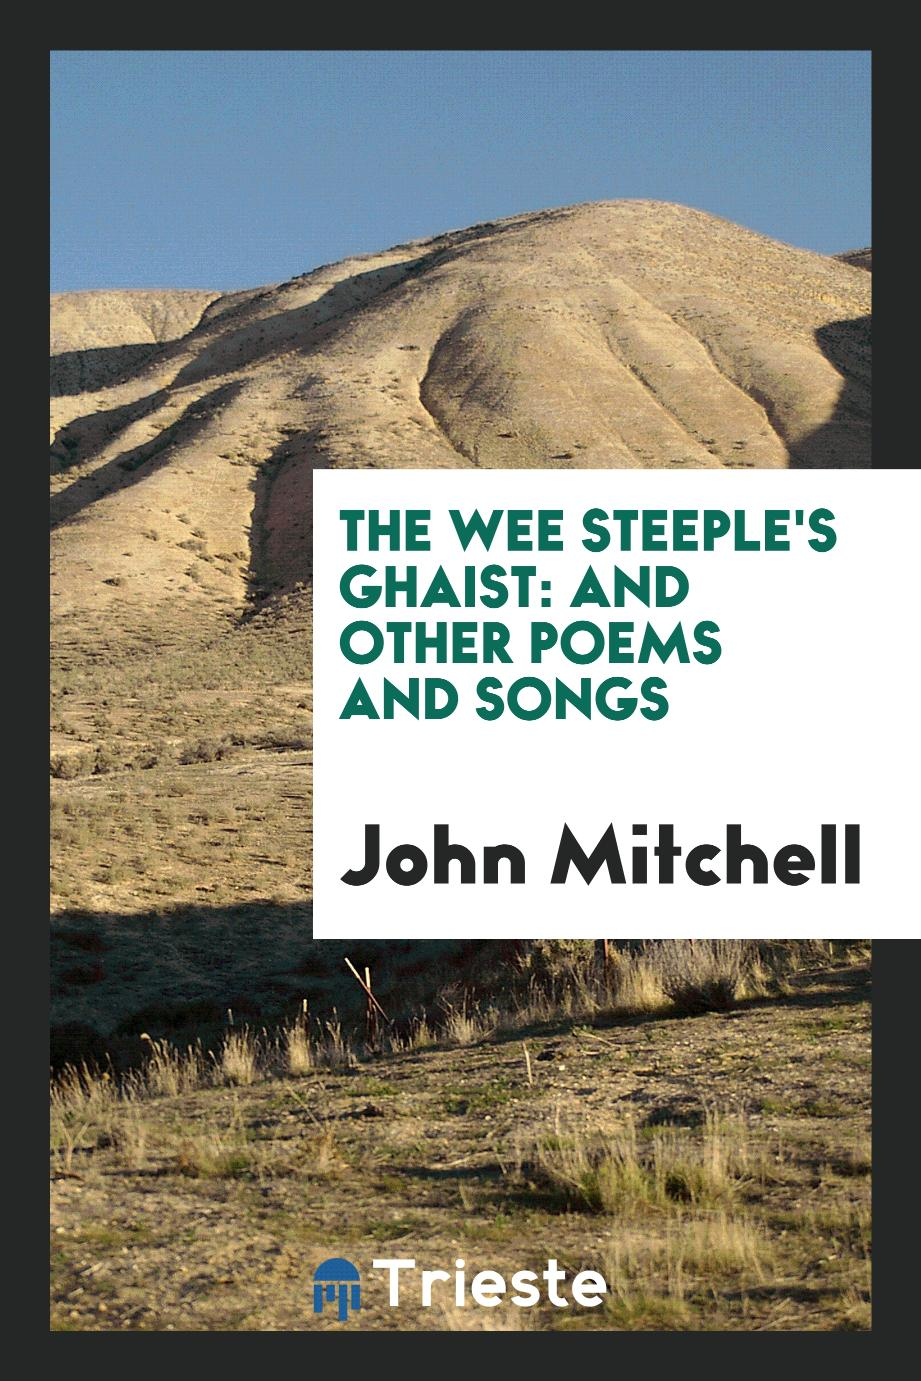 The wee steeple's ghaist: and other poems and songs